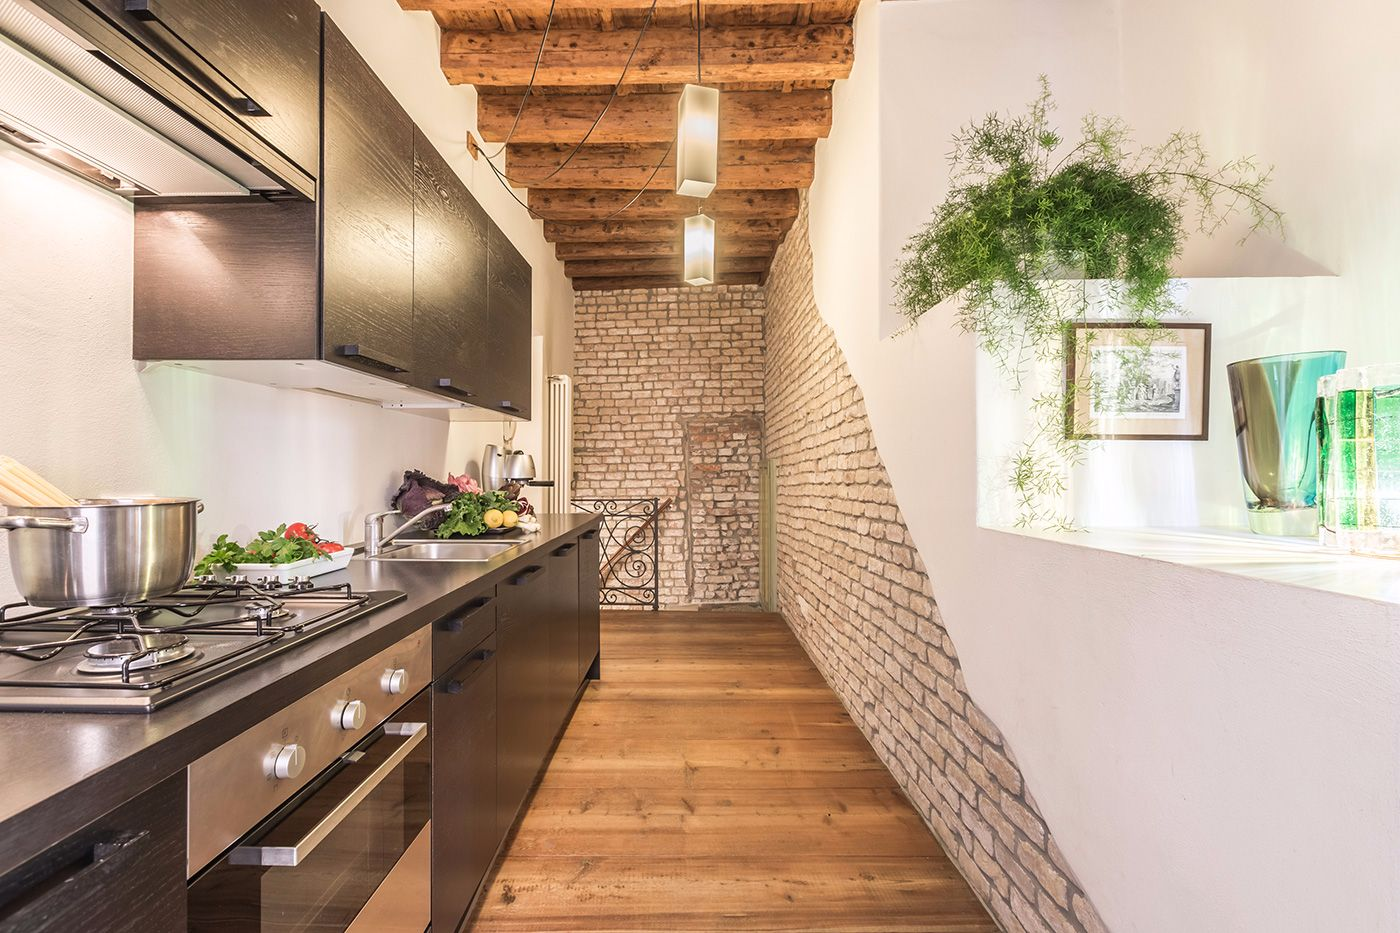 well equipped kitchen perfect for cooking the delicious Rialto market seafood and groceries